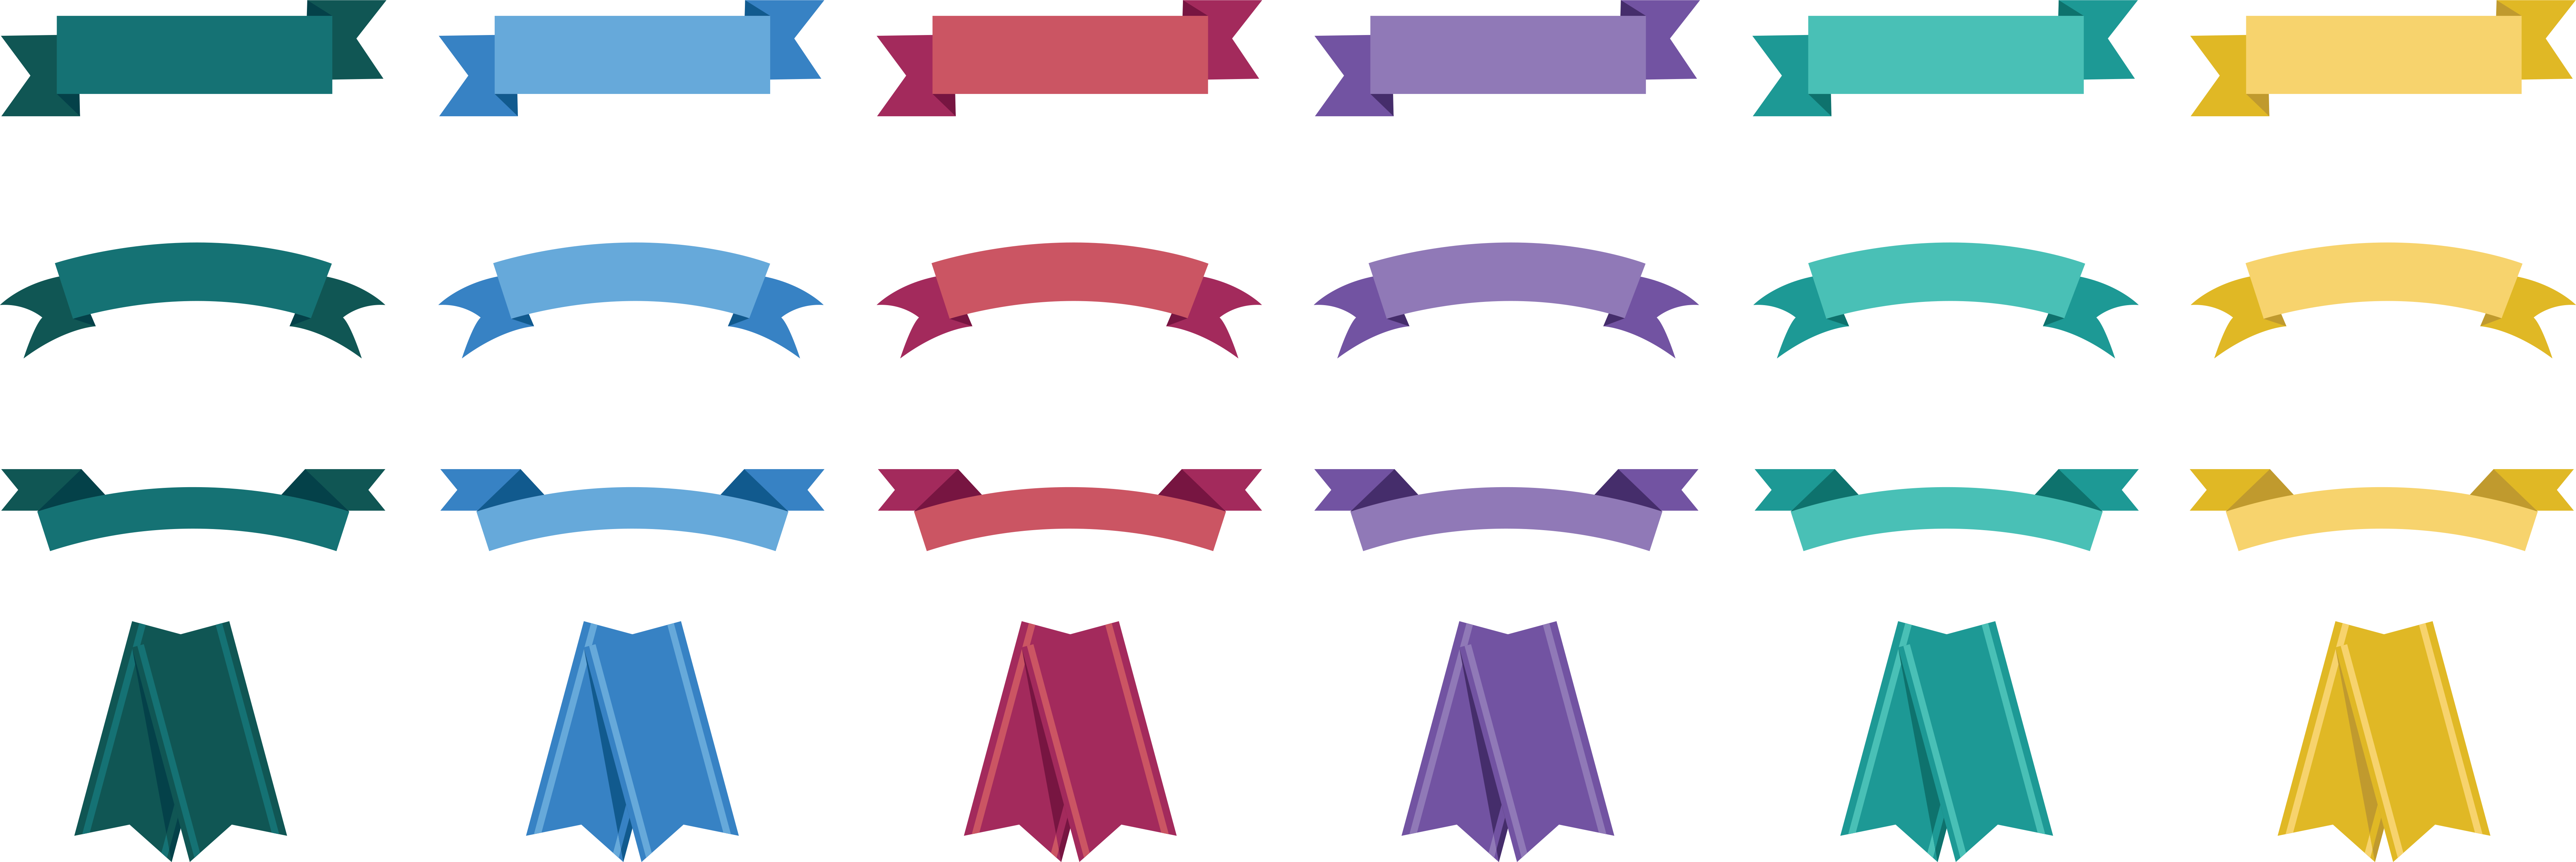 Badge ribbon png. Designing a accredible add